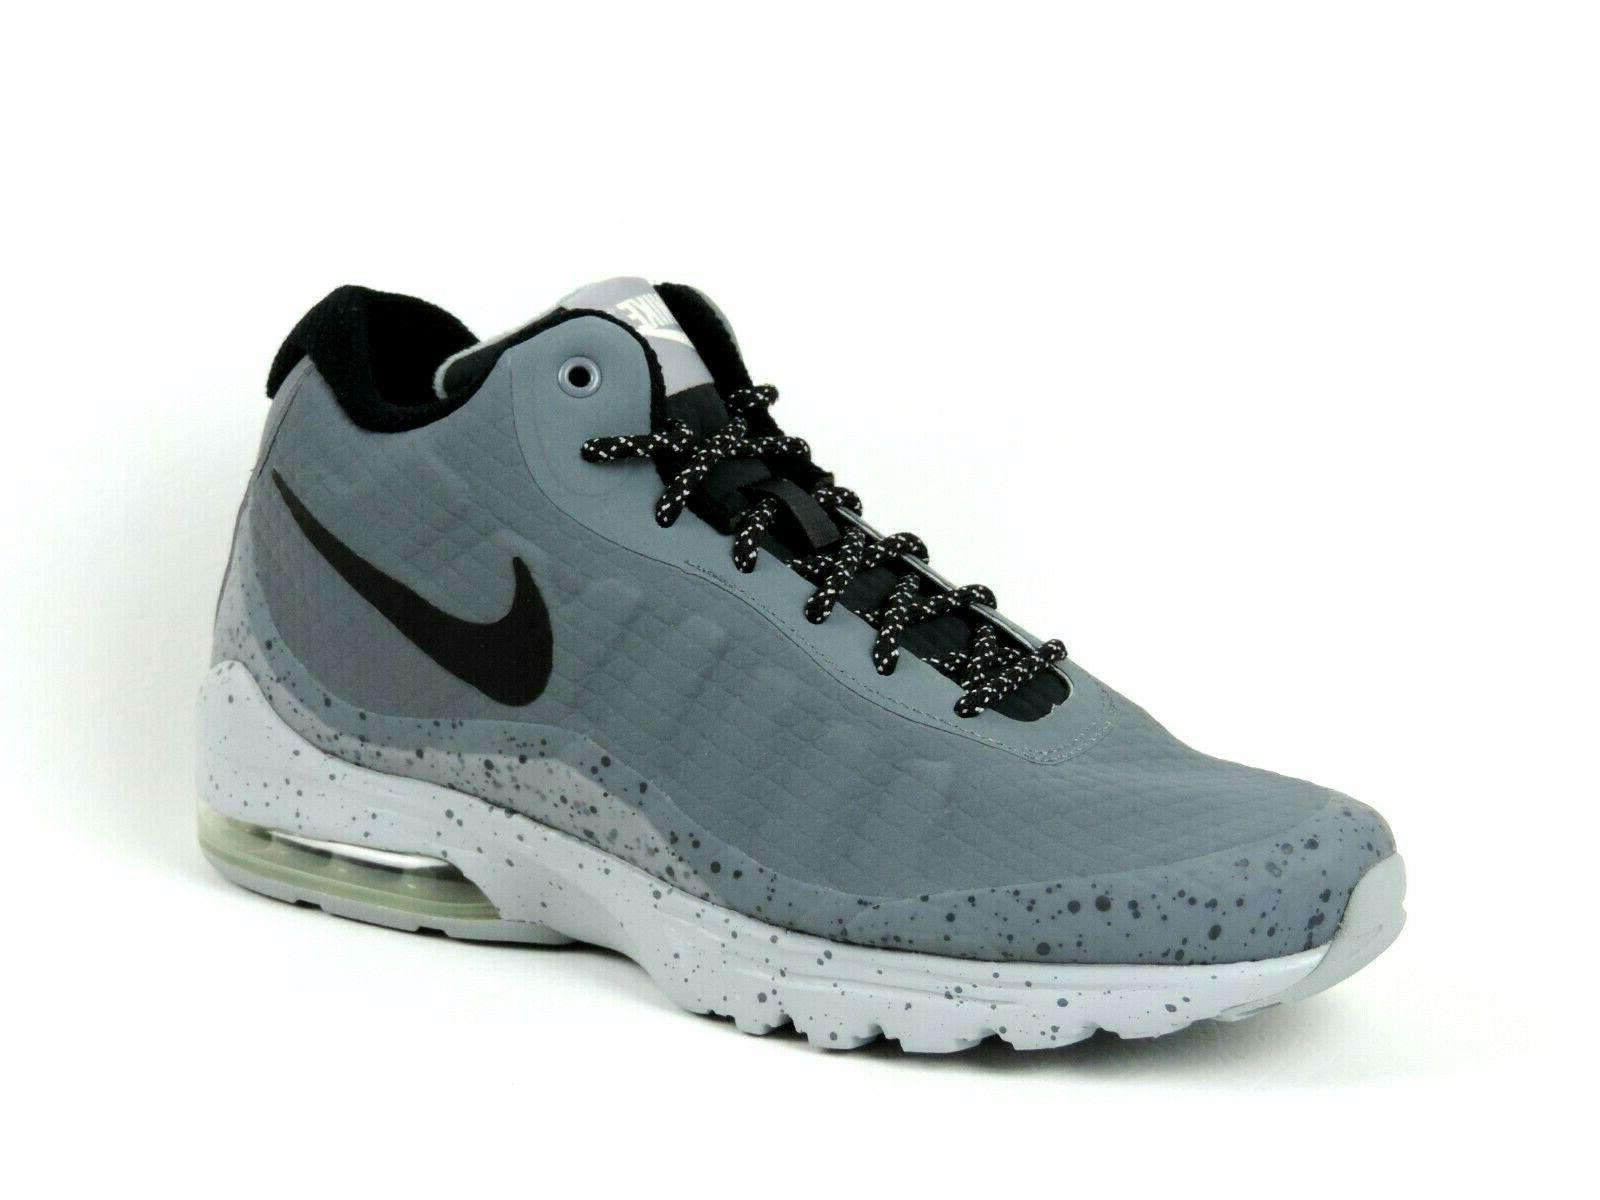 Nike Max Invigor Mid Shoes Black